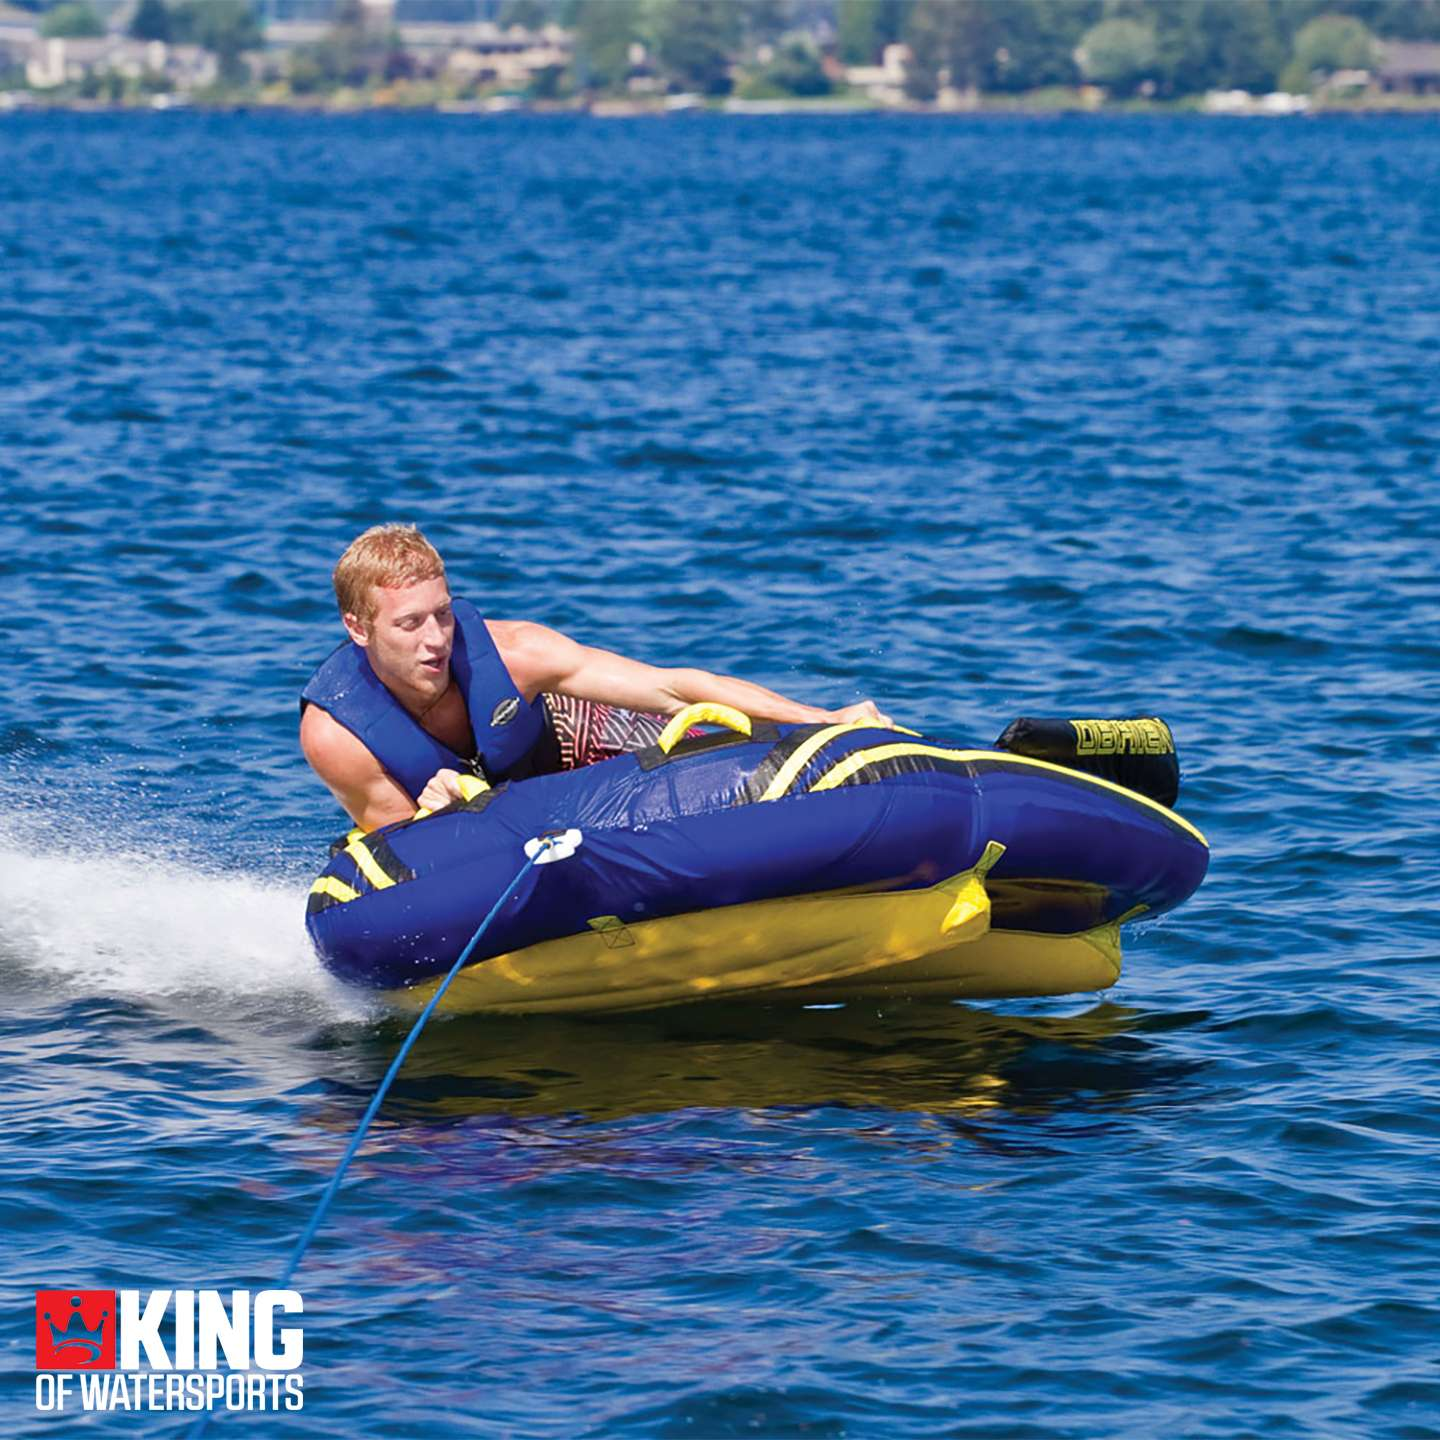 O'Brien Flipside 1 Inflatable Tube | King of Watersports